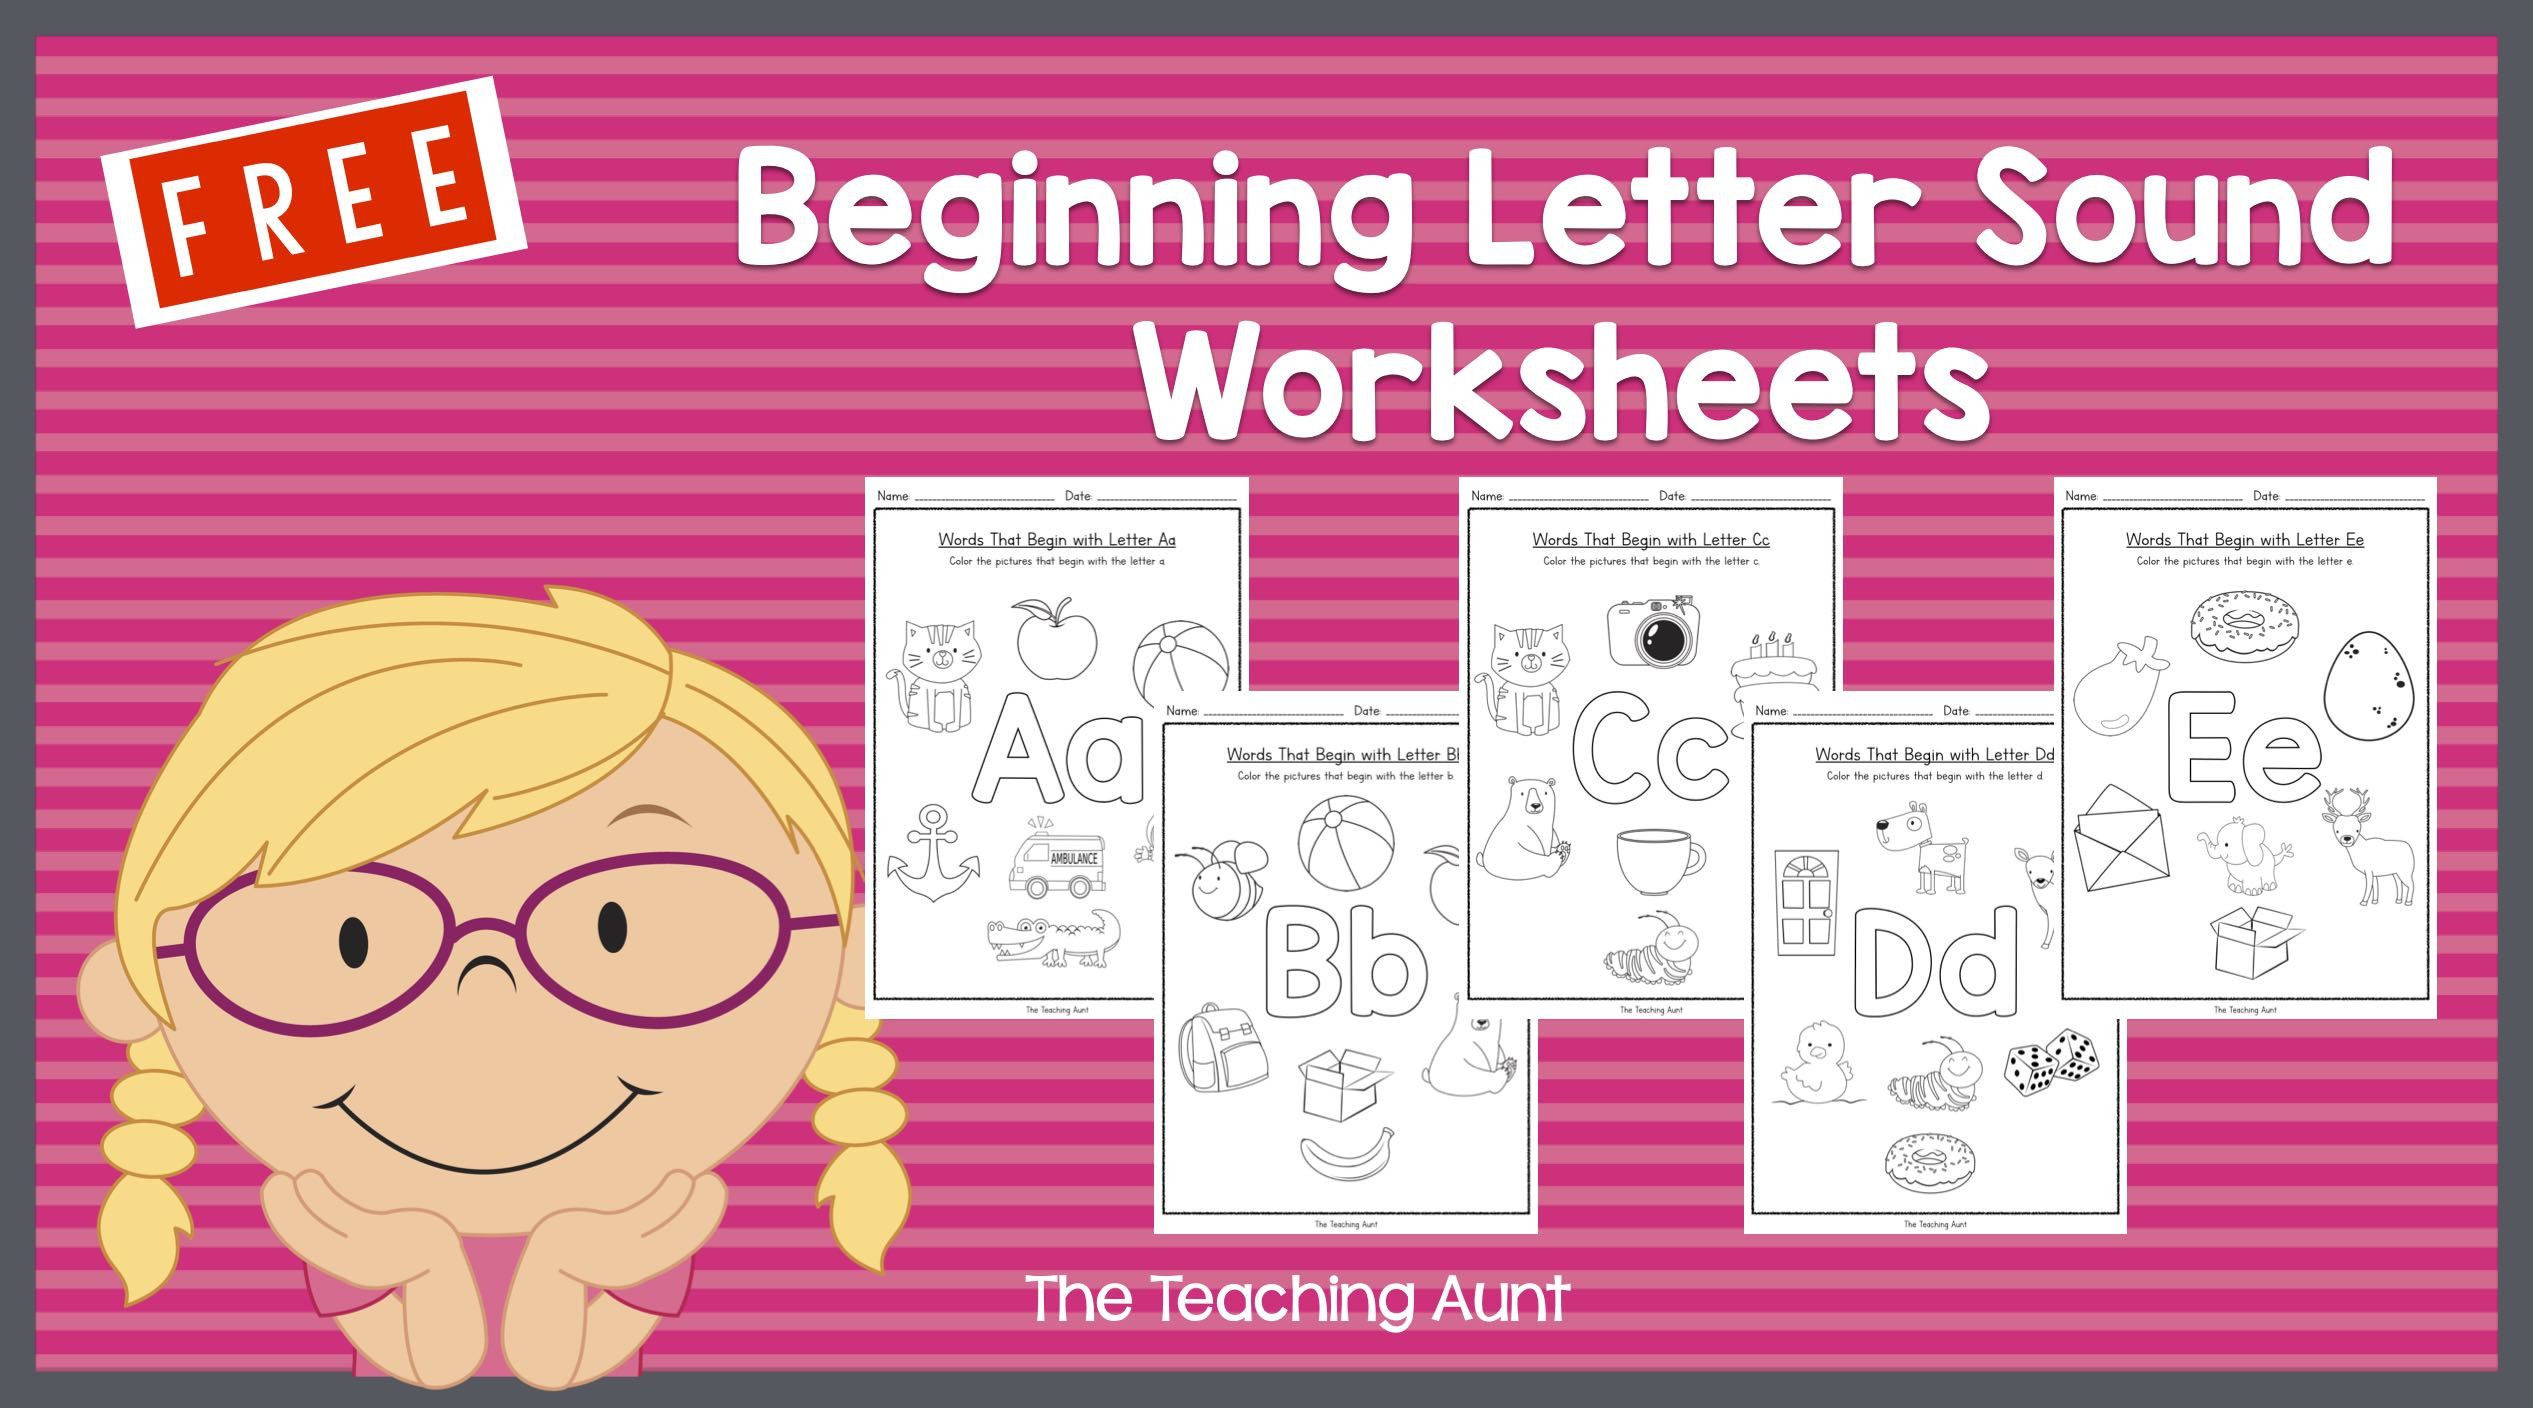 Letter A sound Worksheet Free Beginning Letter sounds Worksheets the Teaching Aunt